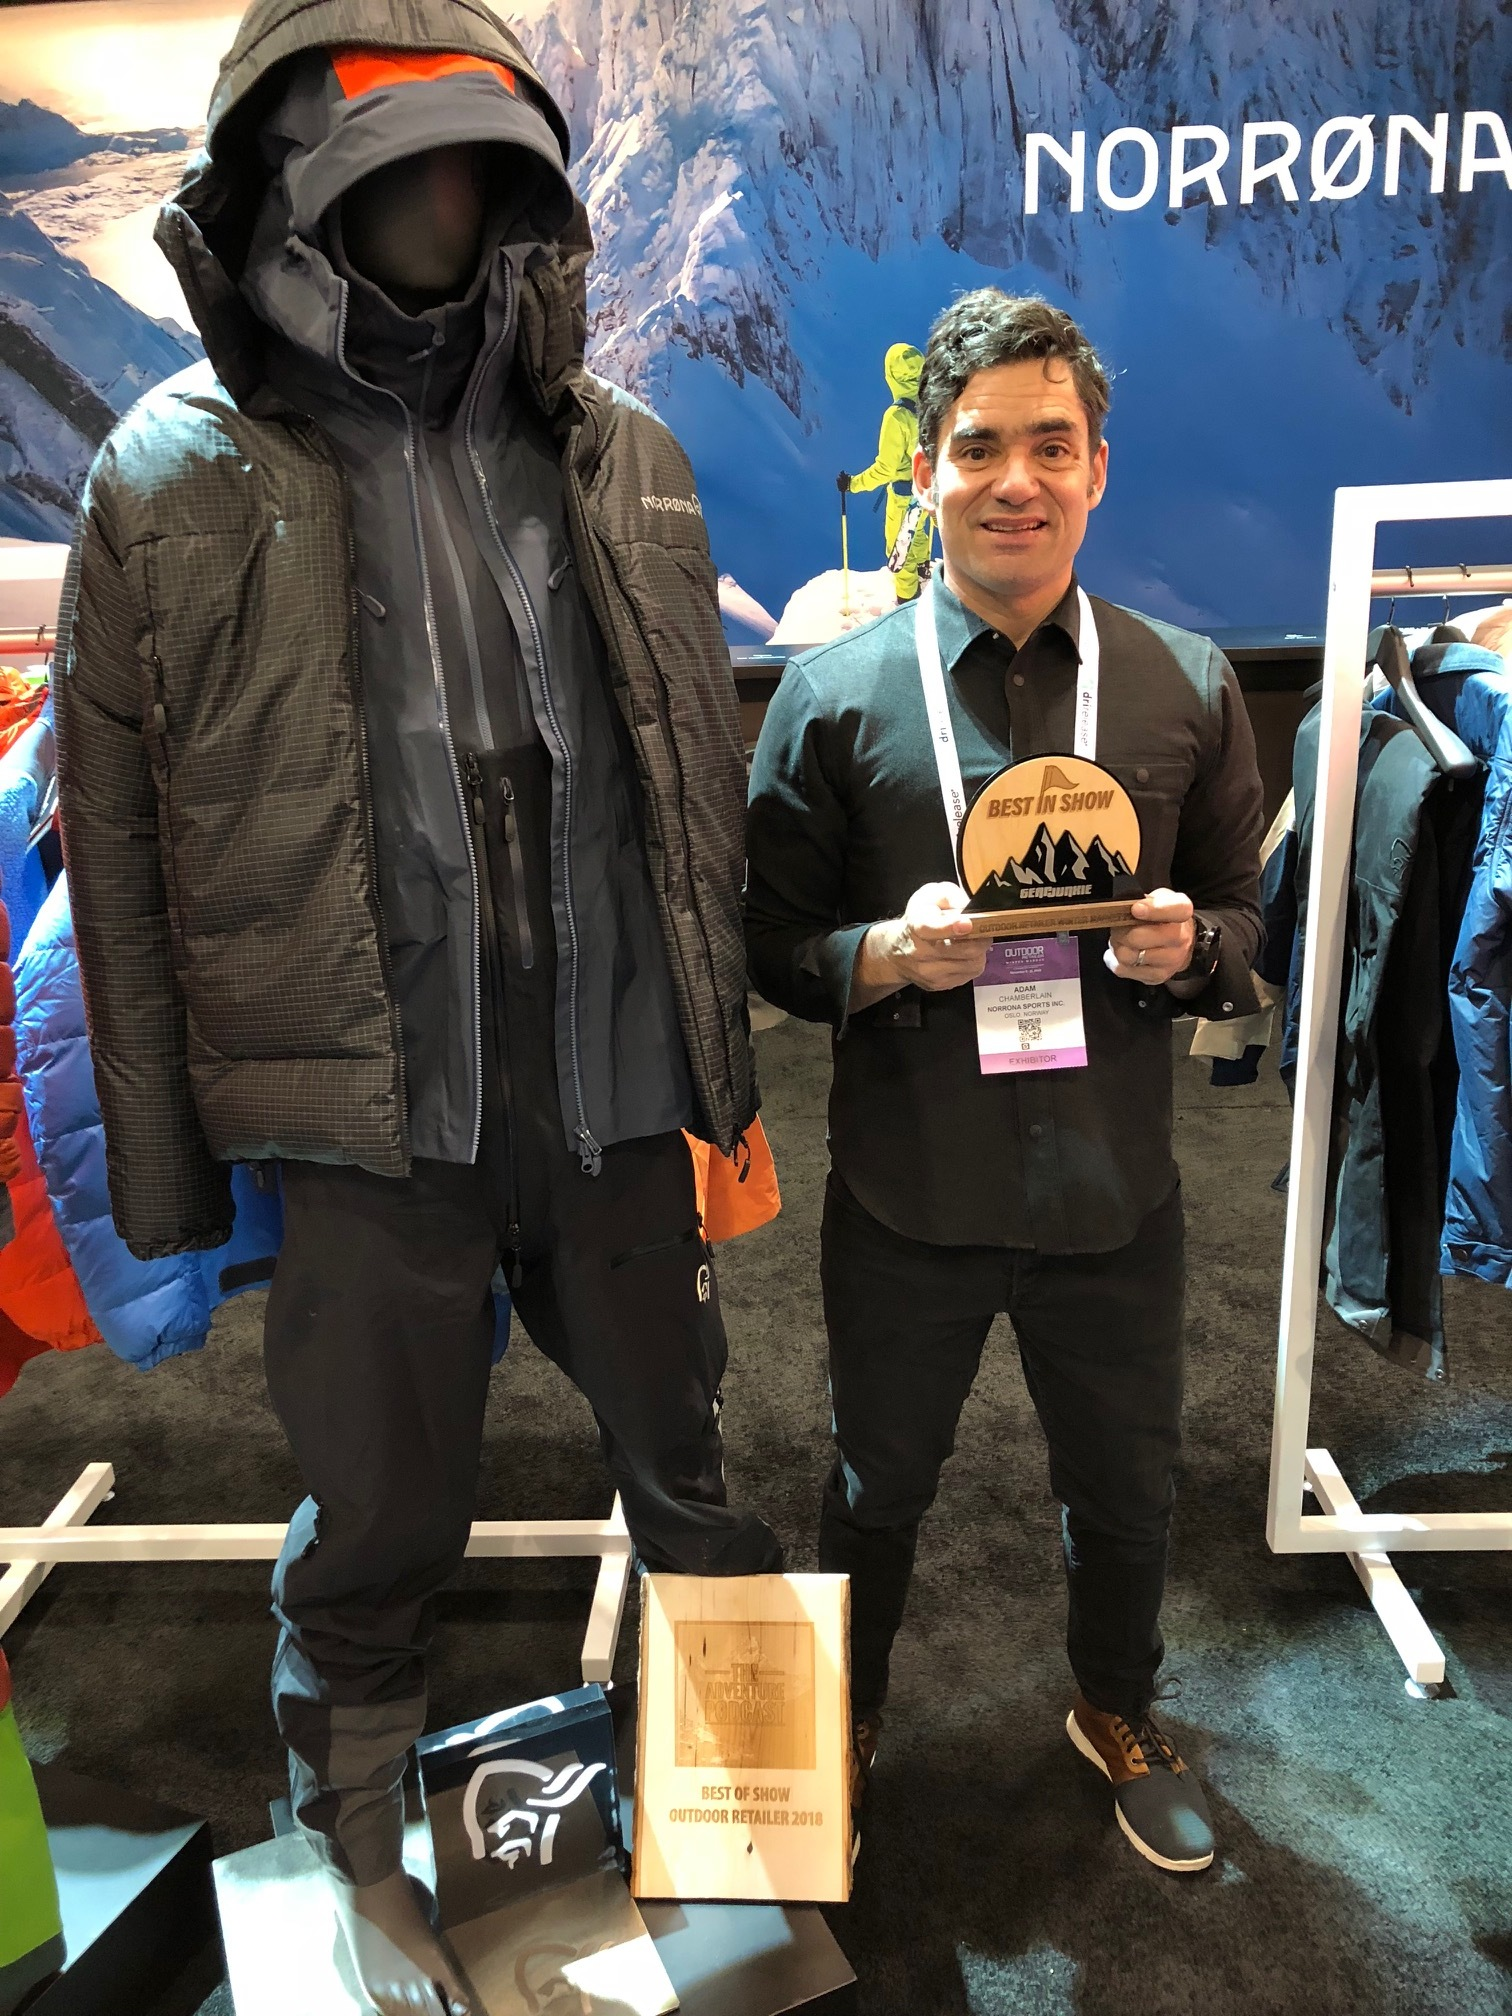 Adam Chamberlain, U.S. sales manager for Norrona, accepts the GearJunkie Best In Show award on Day 2 at Outdoor Retailer Winter Market 2018